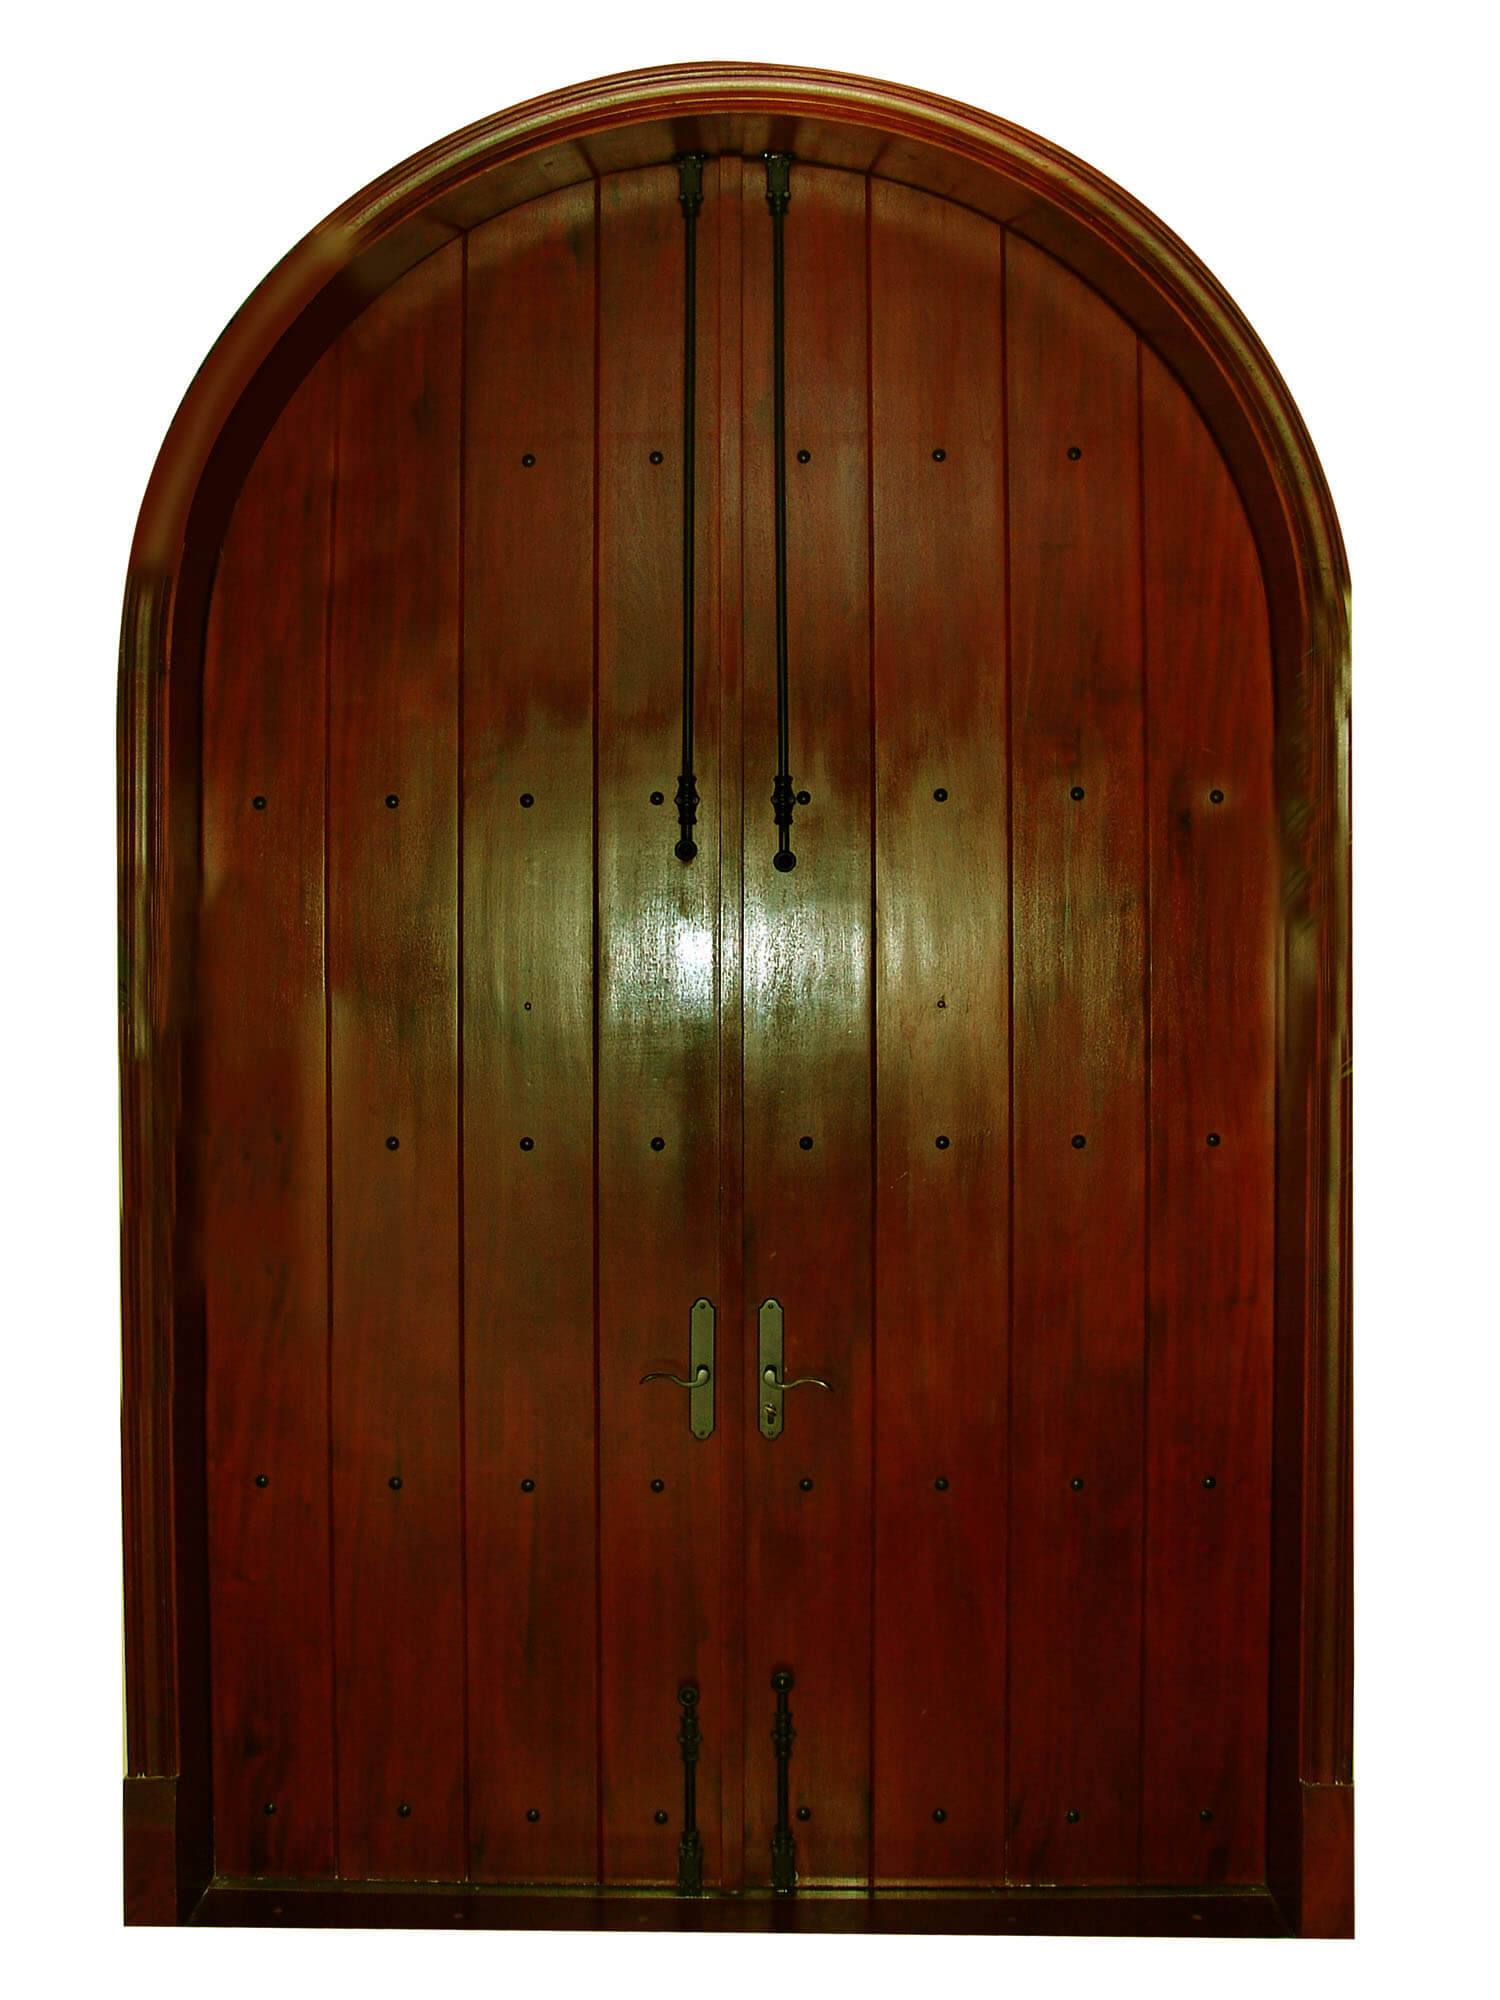 ANNA MARIA ISLAND INTERIOR VIEW OF MAHOGANY DOOR